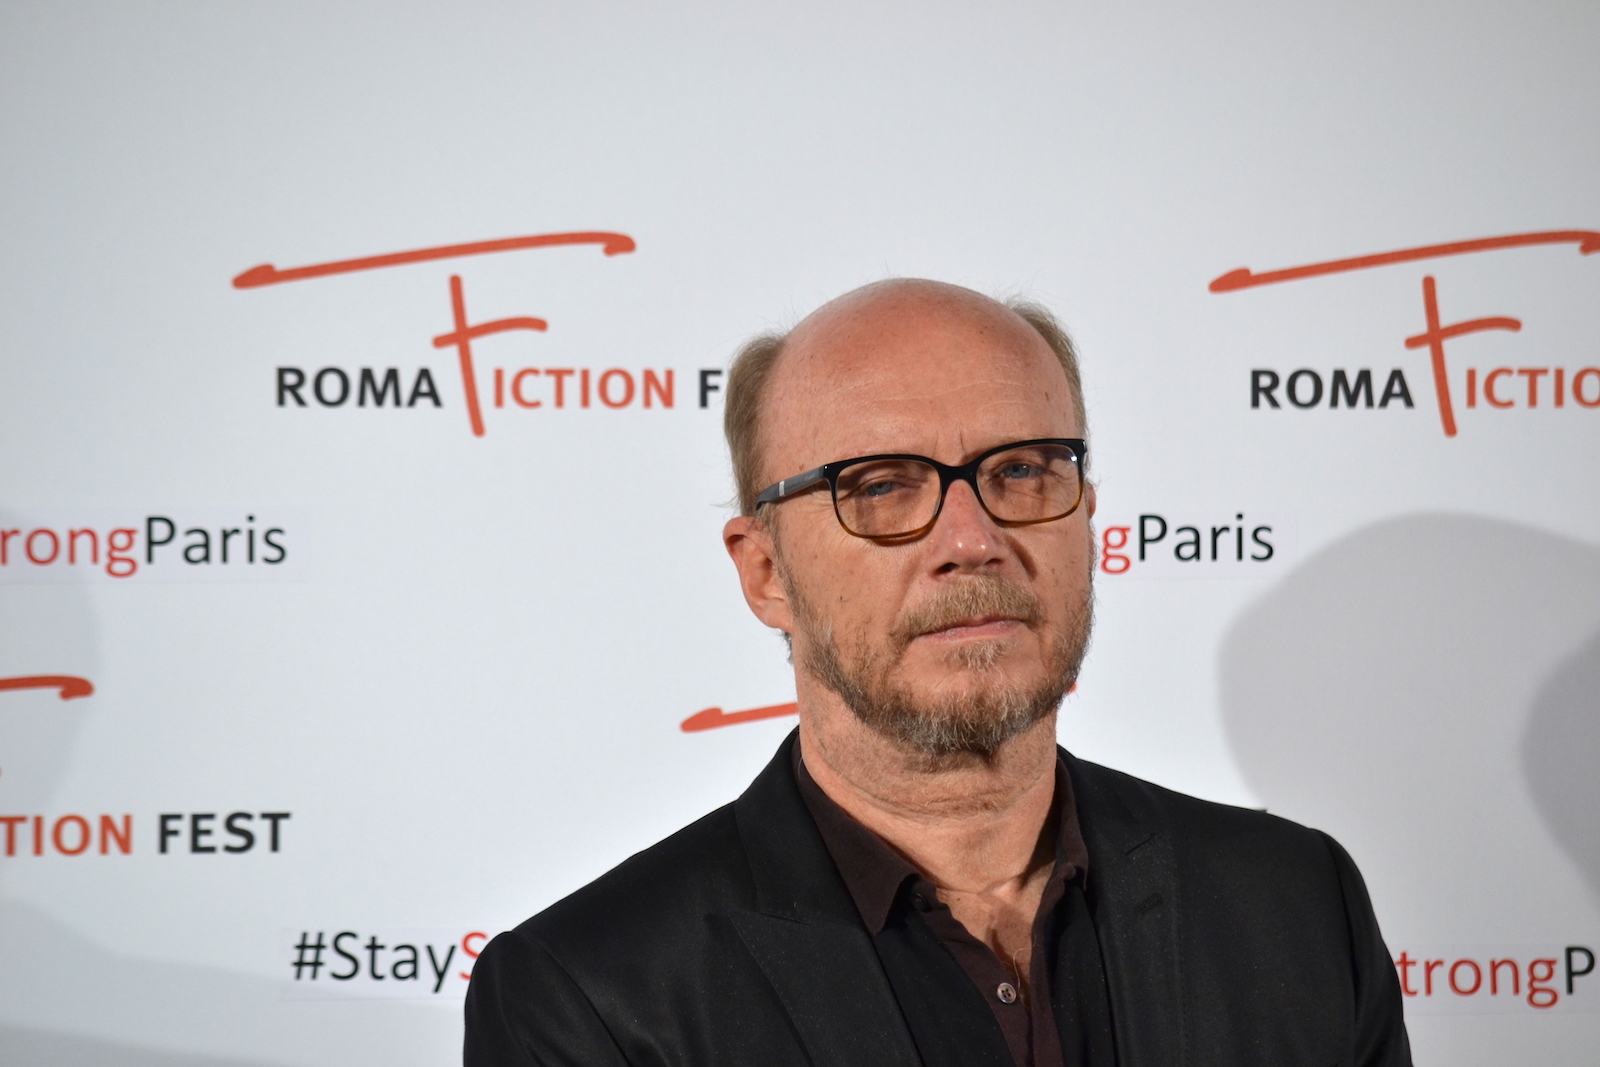 Roma Fiction Fest 2015: Paul Haggis al photocall prima della Masterclass